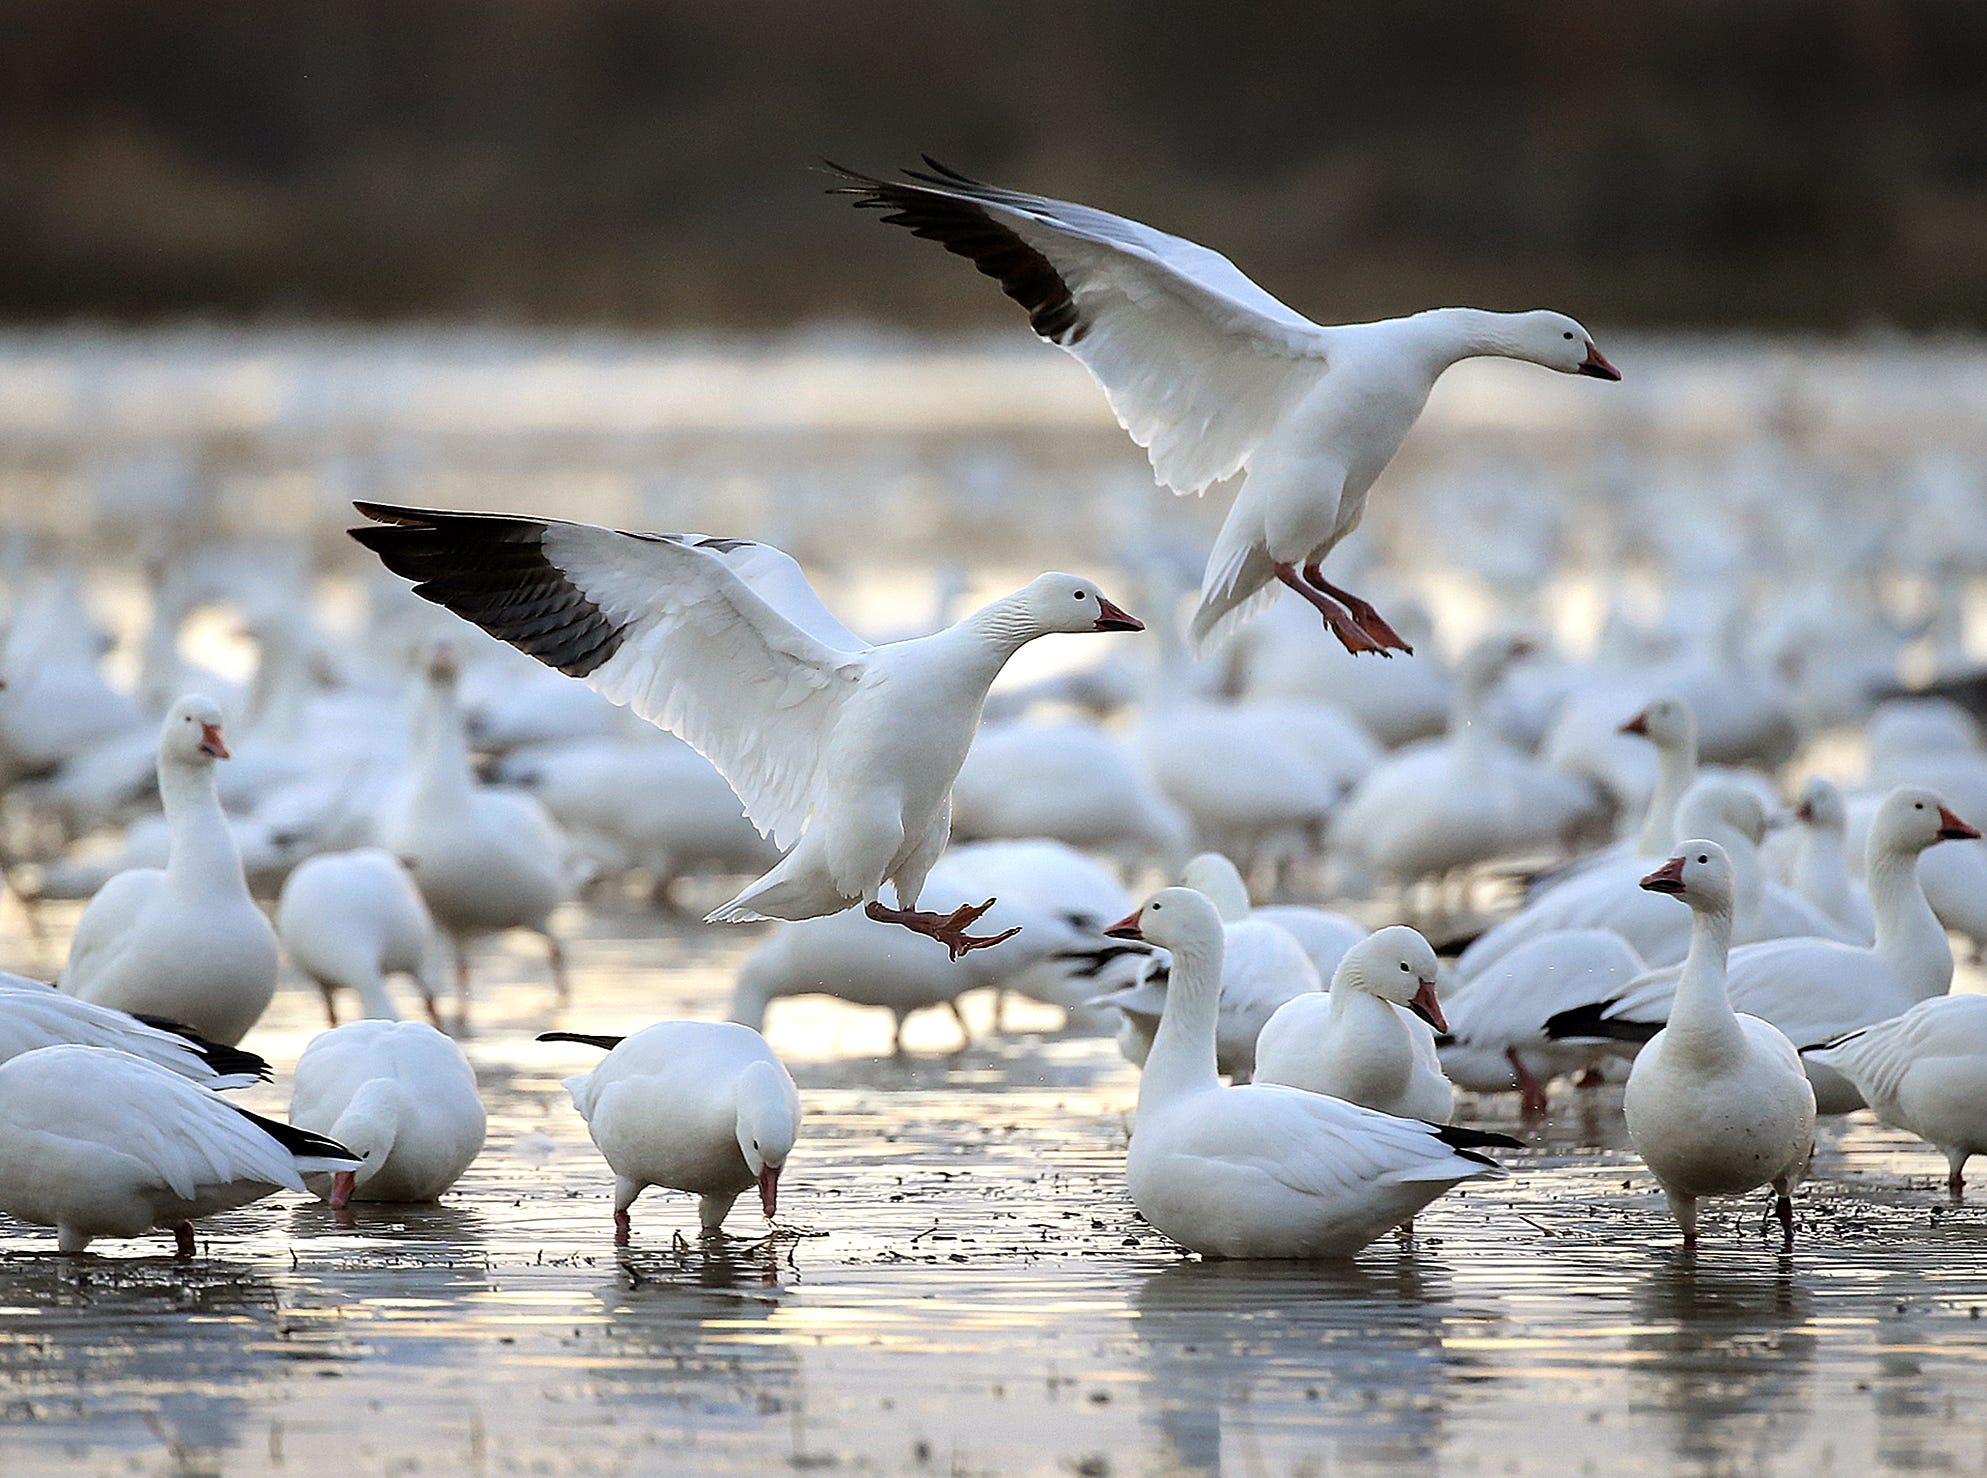 Snow geese land carefully in a sea of geese at Bosque del Apache National Wildlife Refuge.